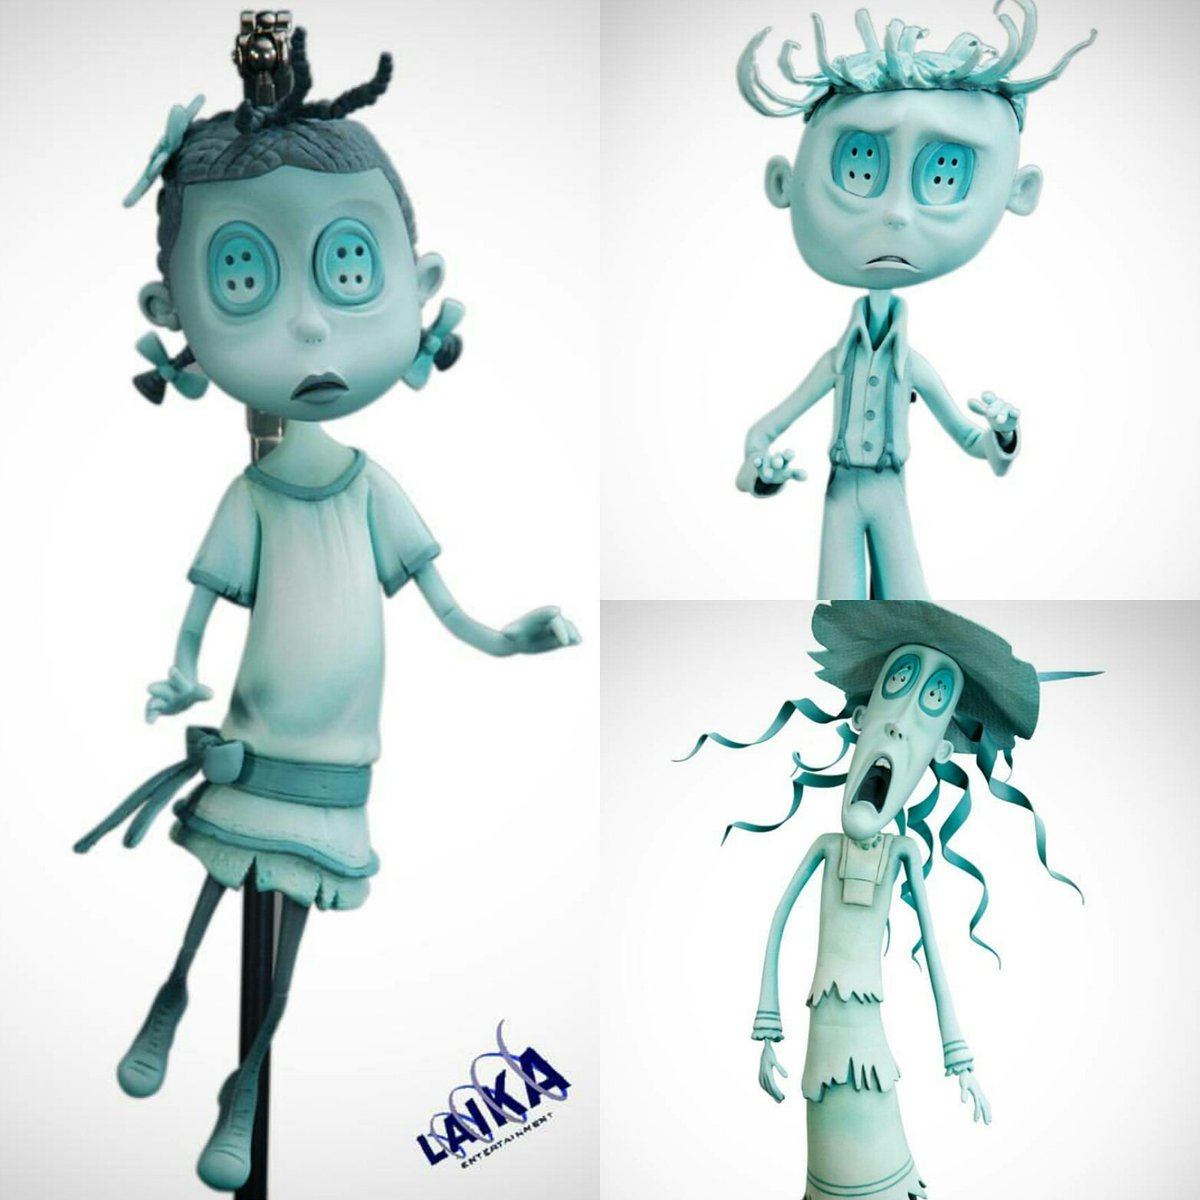 Laika Fan On Twitter Ghost Children Puppets From Coraline By Victoria Rose Laikastudios Animation Oregonfilm